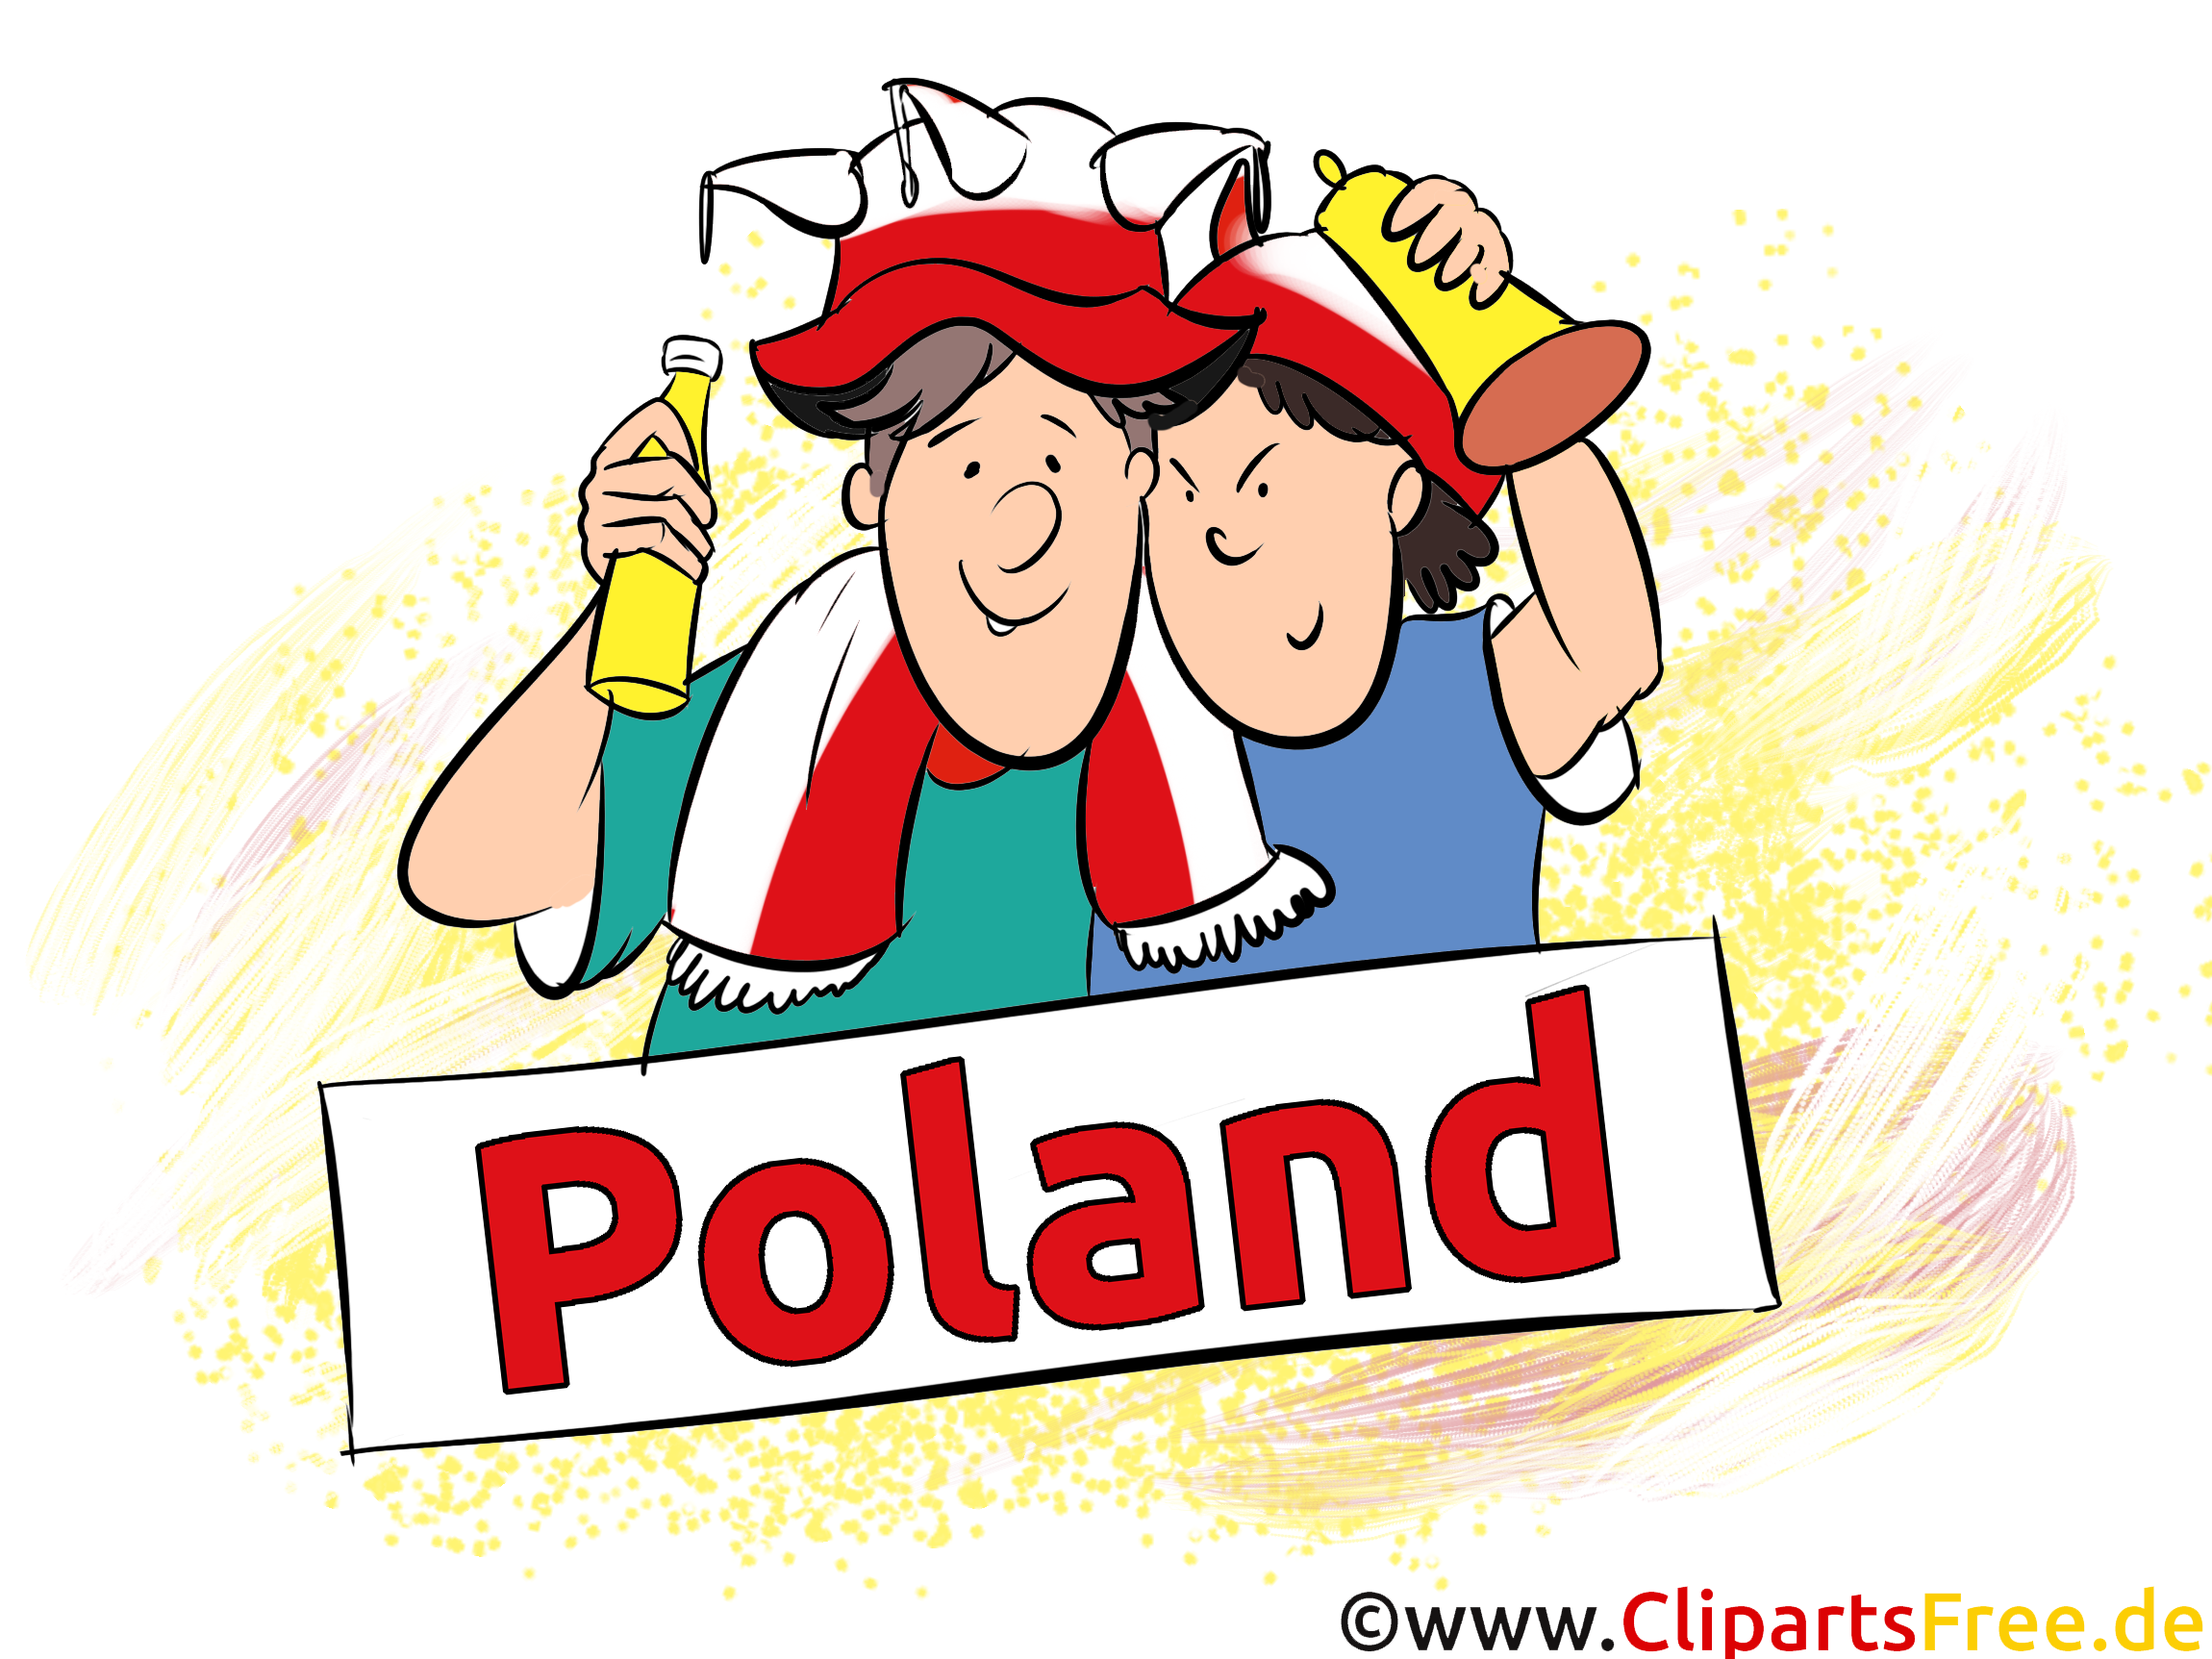 Polen Fussball Bilder, Cliparts, Cartoons, Grafiken.